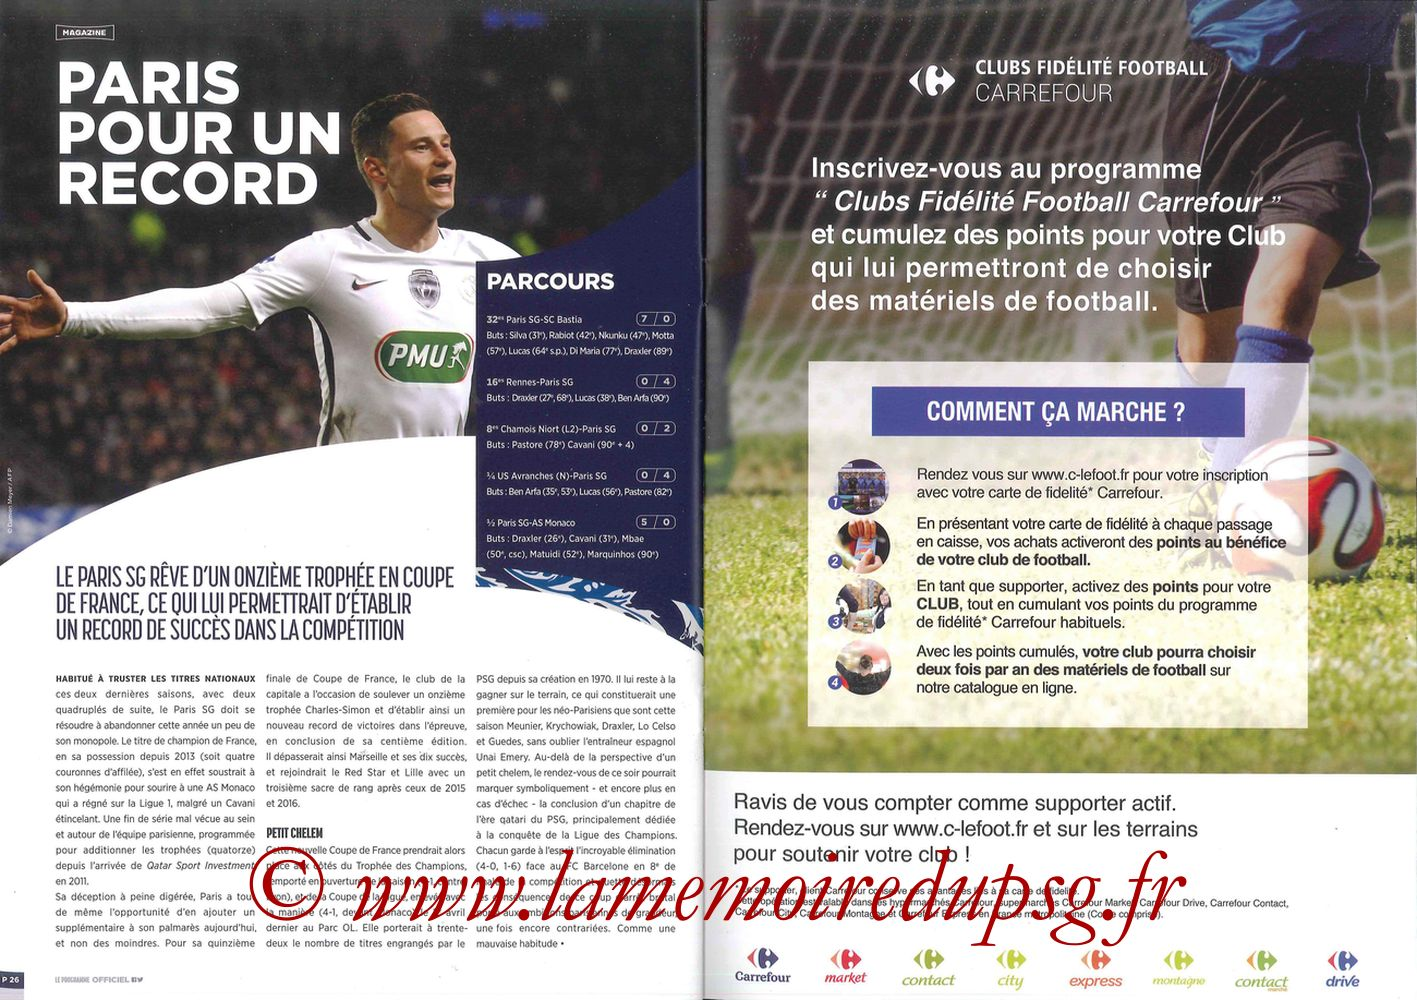 2017-05-27  Angers-PSG (Finale CF à Saint-Denis, Programme officiel) - Pages 26 et 27